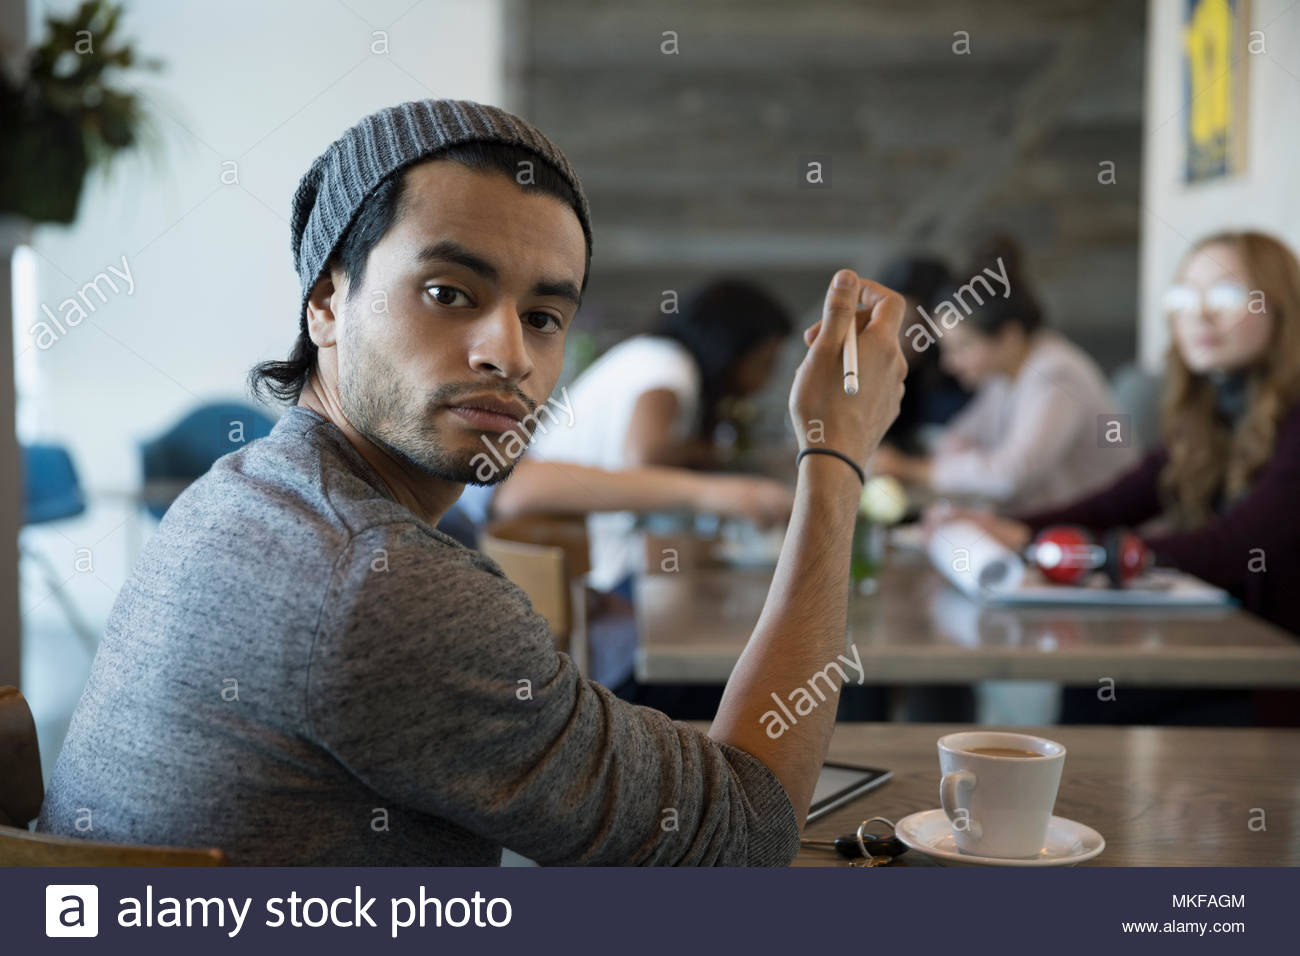 Portrait confident, creative young man with stylus using digital tablet in cafe - Stock Image